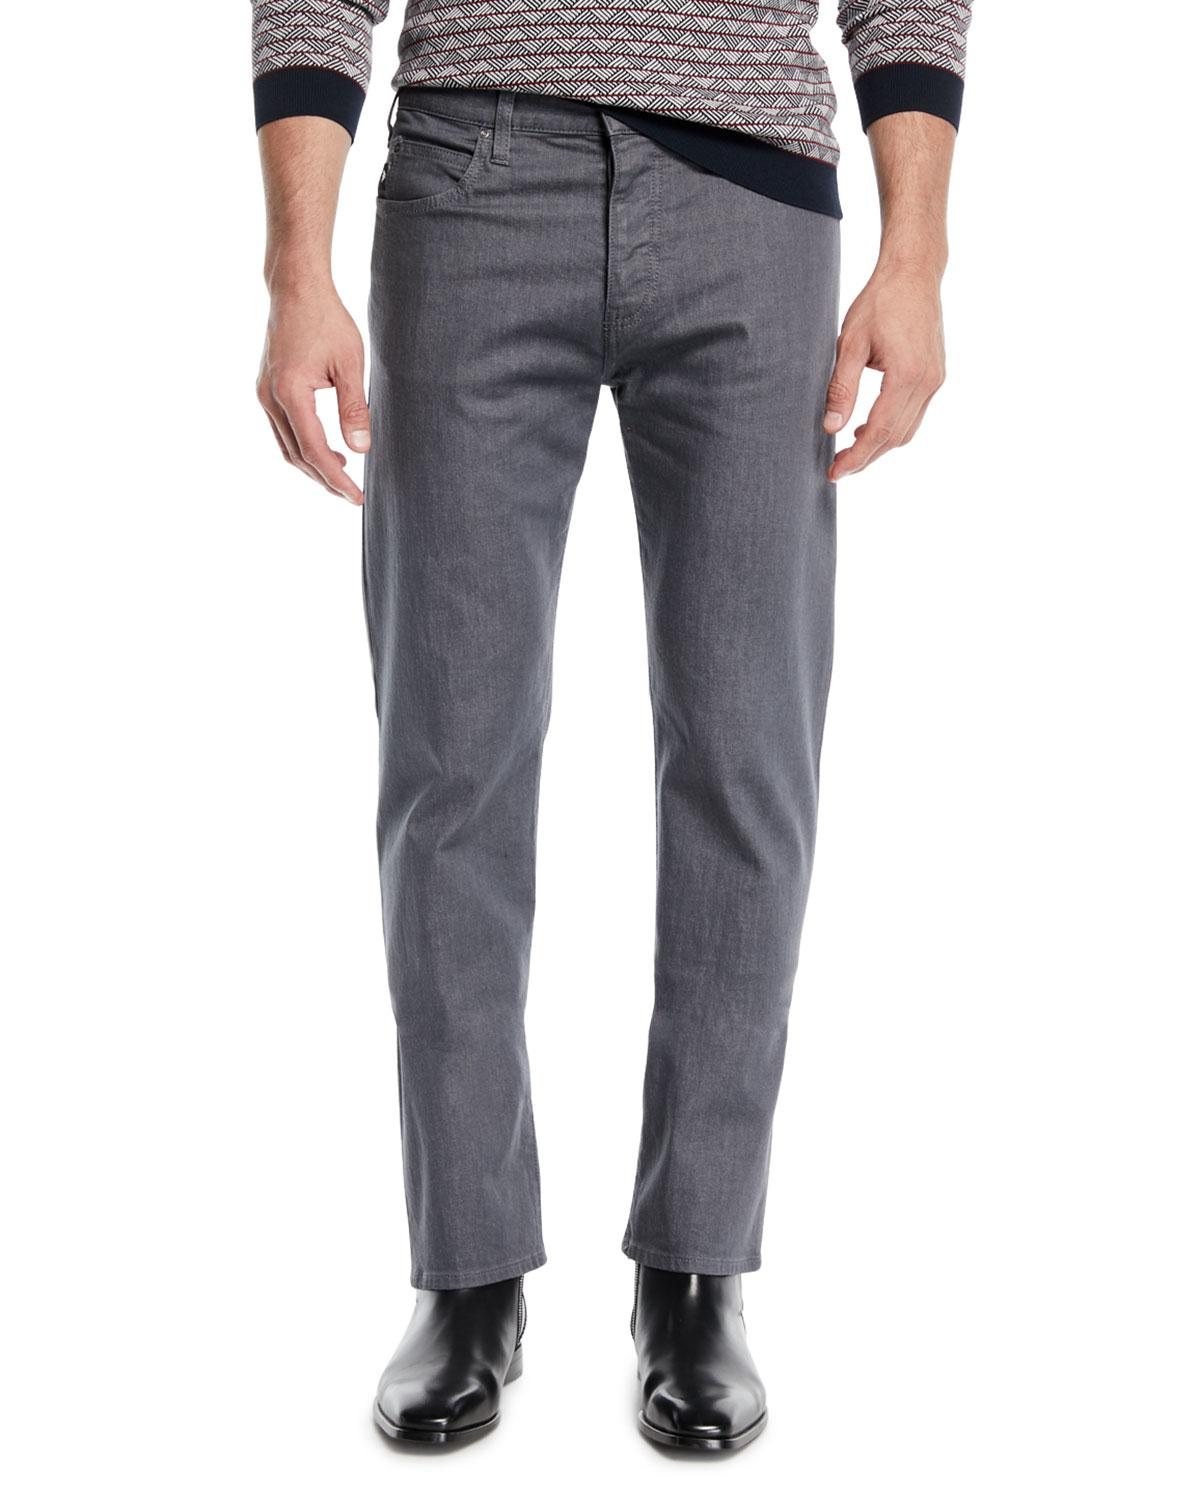 59b1eb7c1 Lyst - Emporio Armani Men's Stretch-twill 5-pocket Pants in Gray for Men